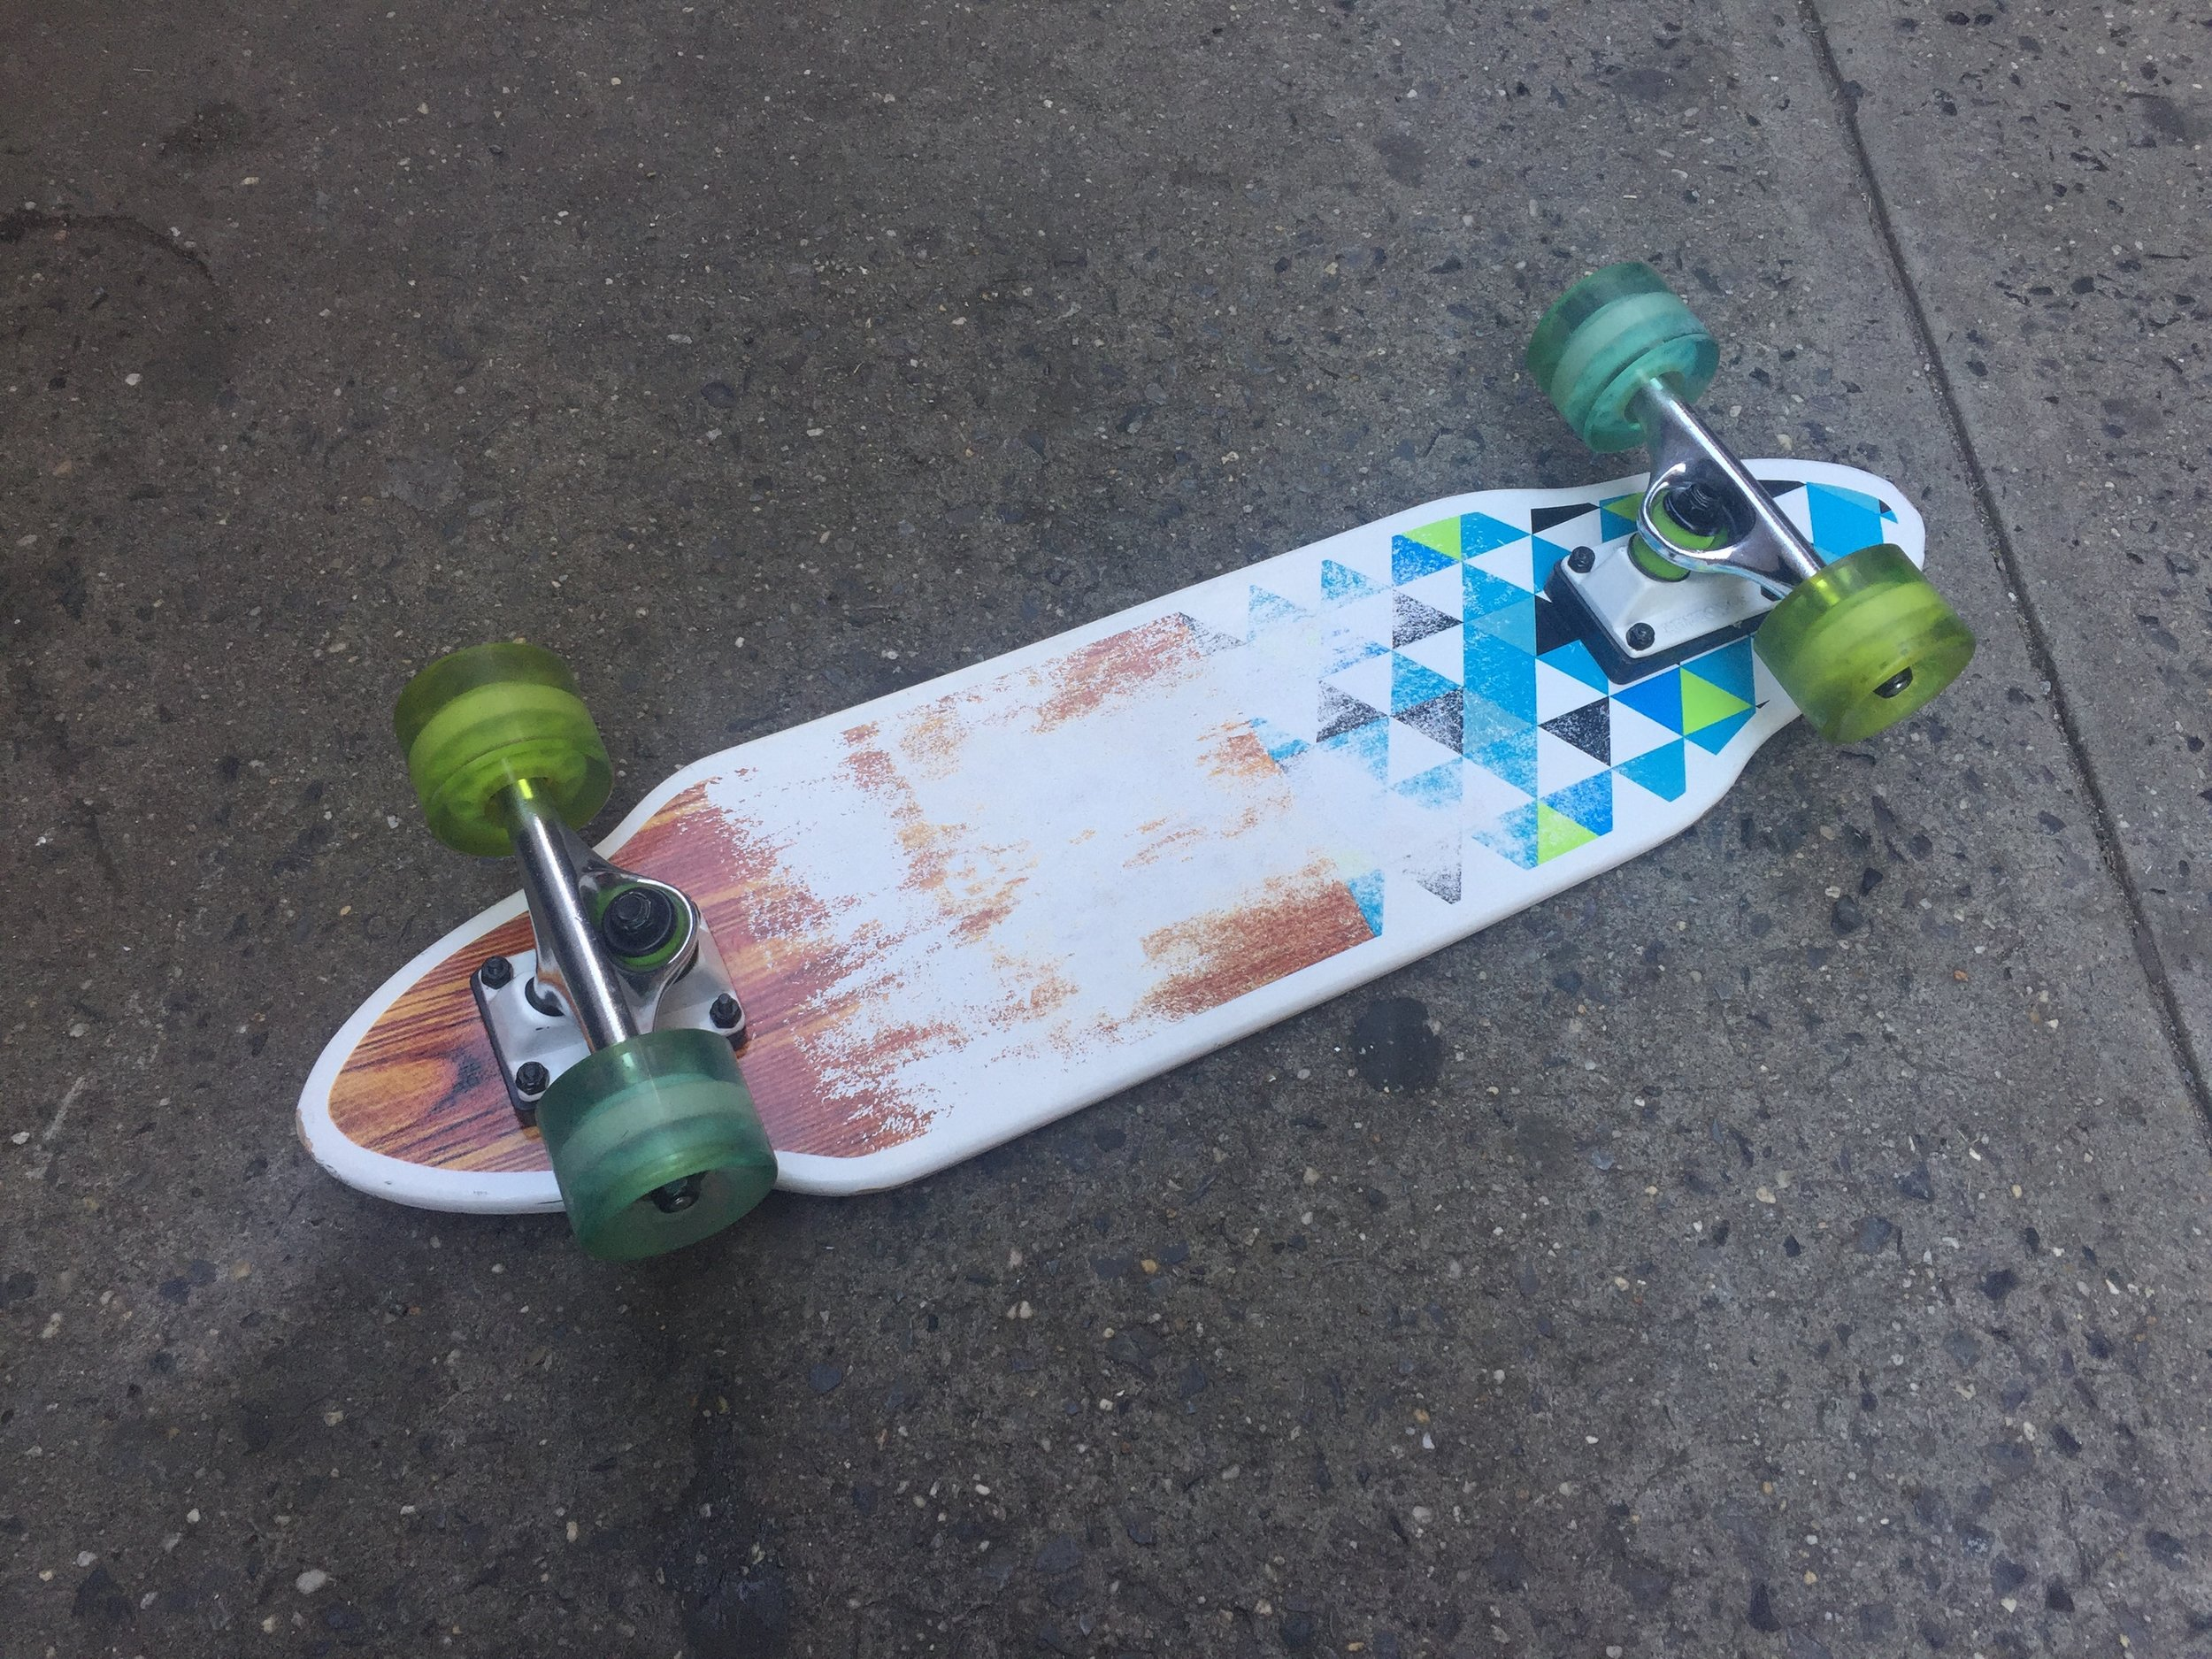 SKATEBOARD 10 BOTTOM